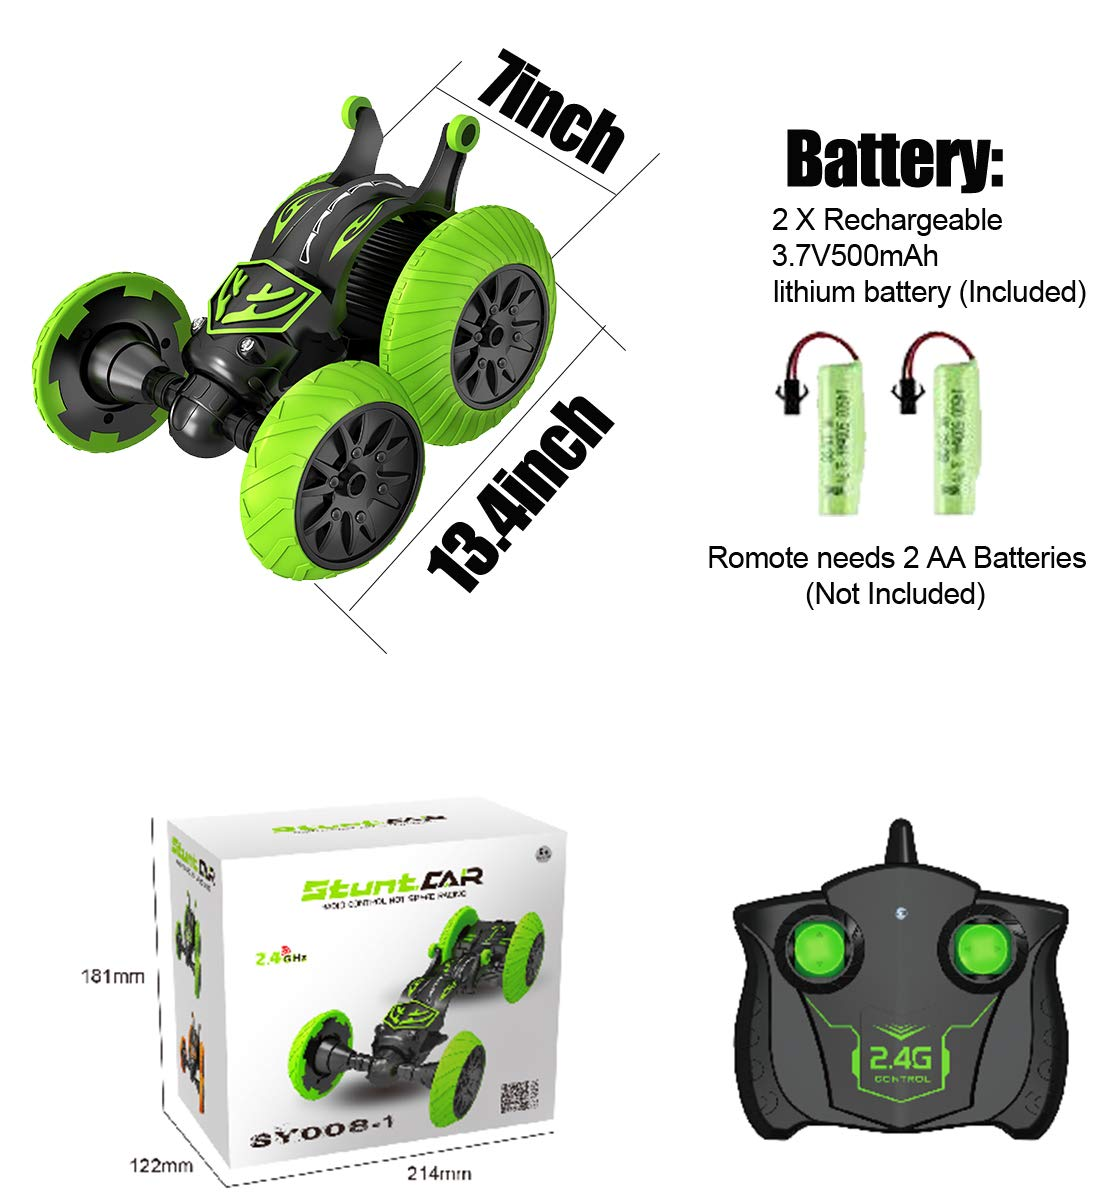 POWERbeast RC Cars Stunt Car Toys for Kids 2.4Ghz 4WD Remote Control Car Double Sided Rotating Vehicles 360° Flips and Spin, Kids Toy Cars for Boys & Girls Birthday